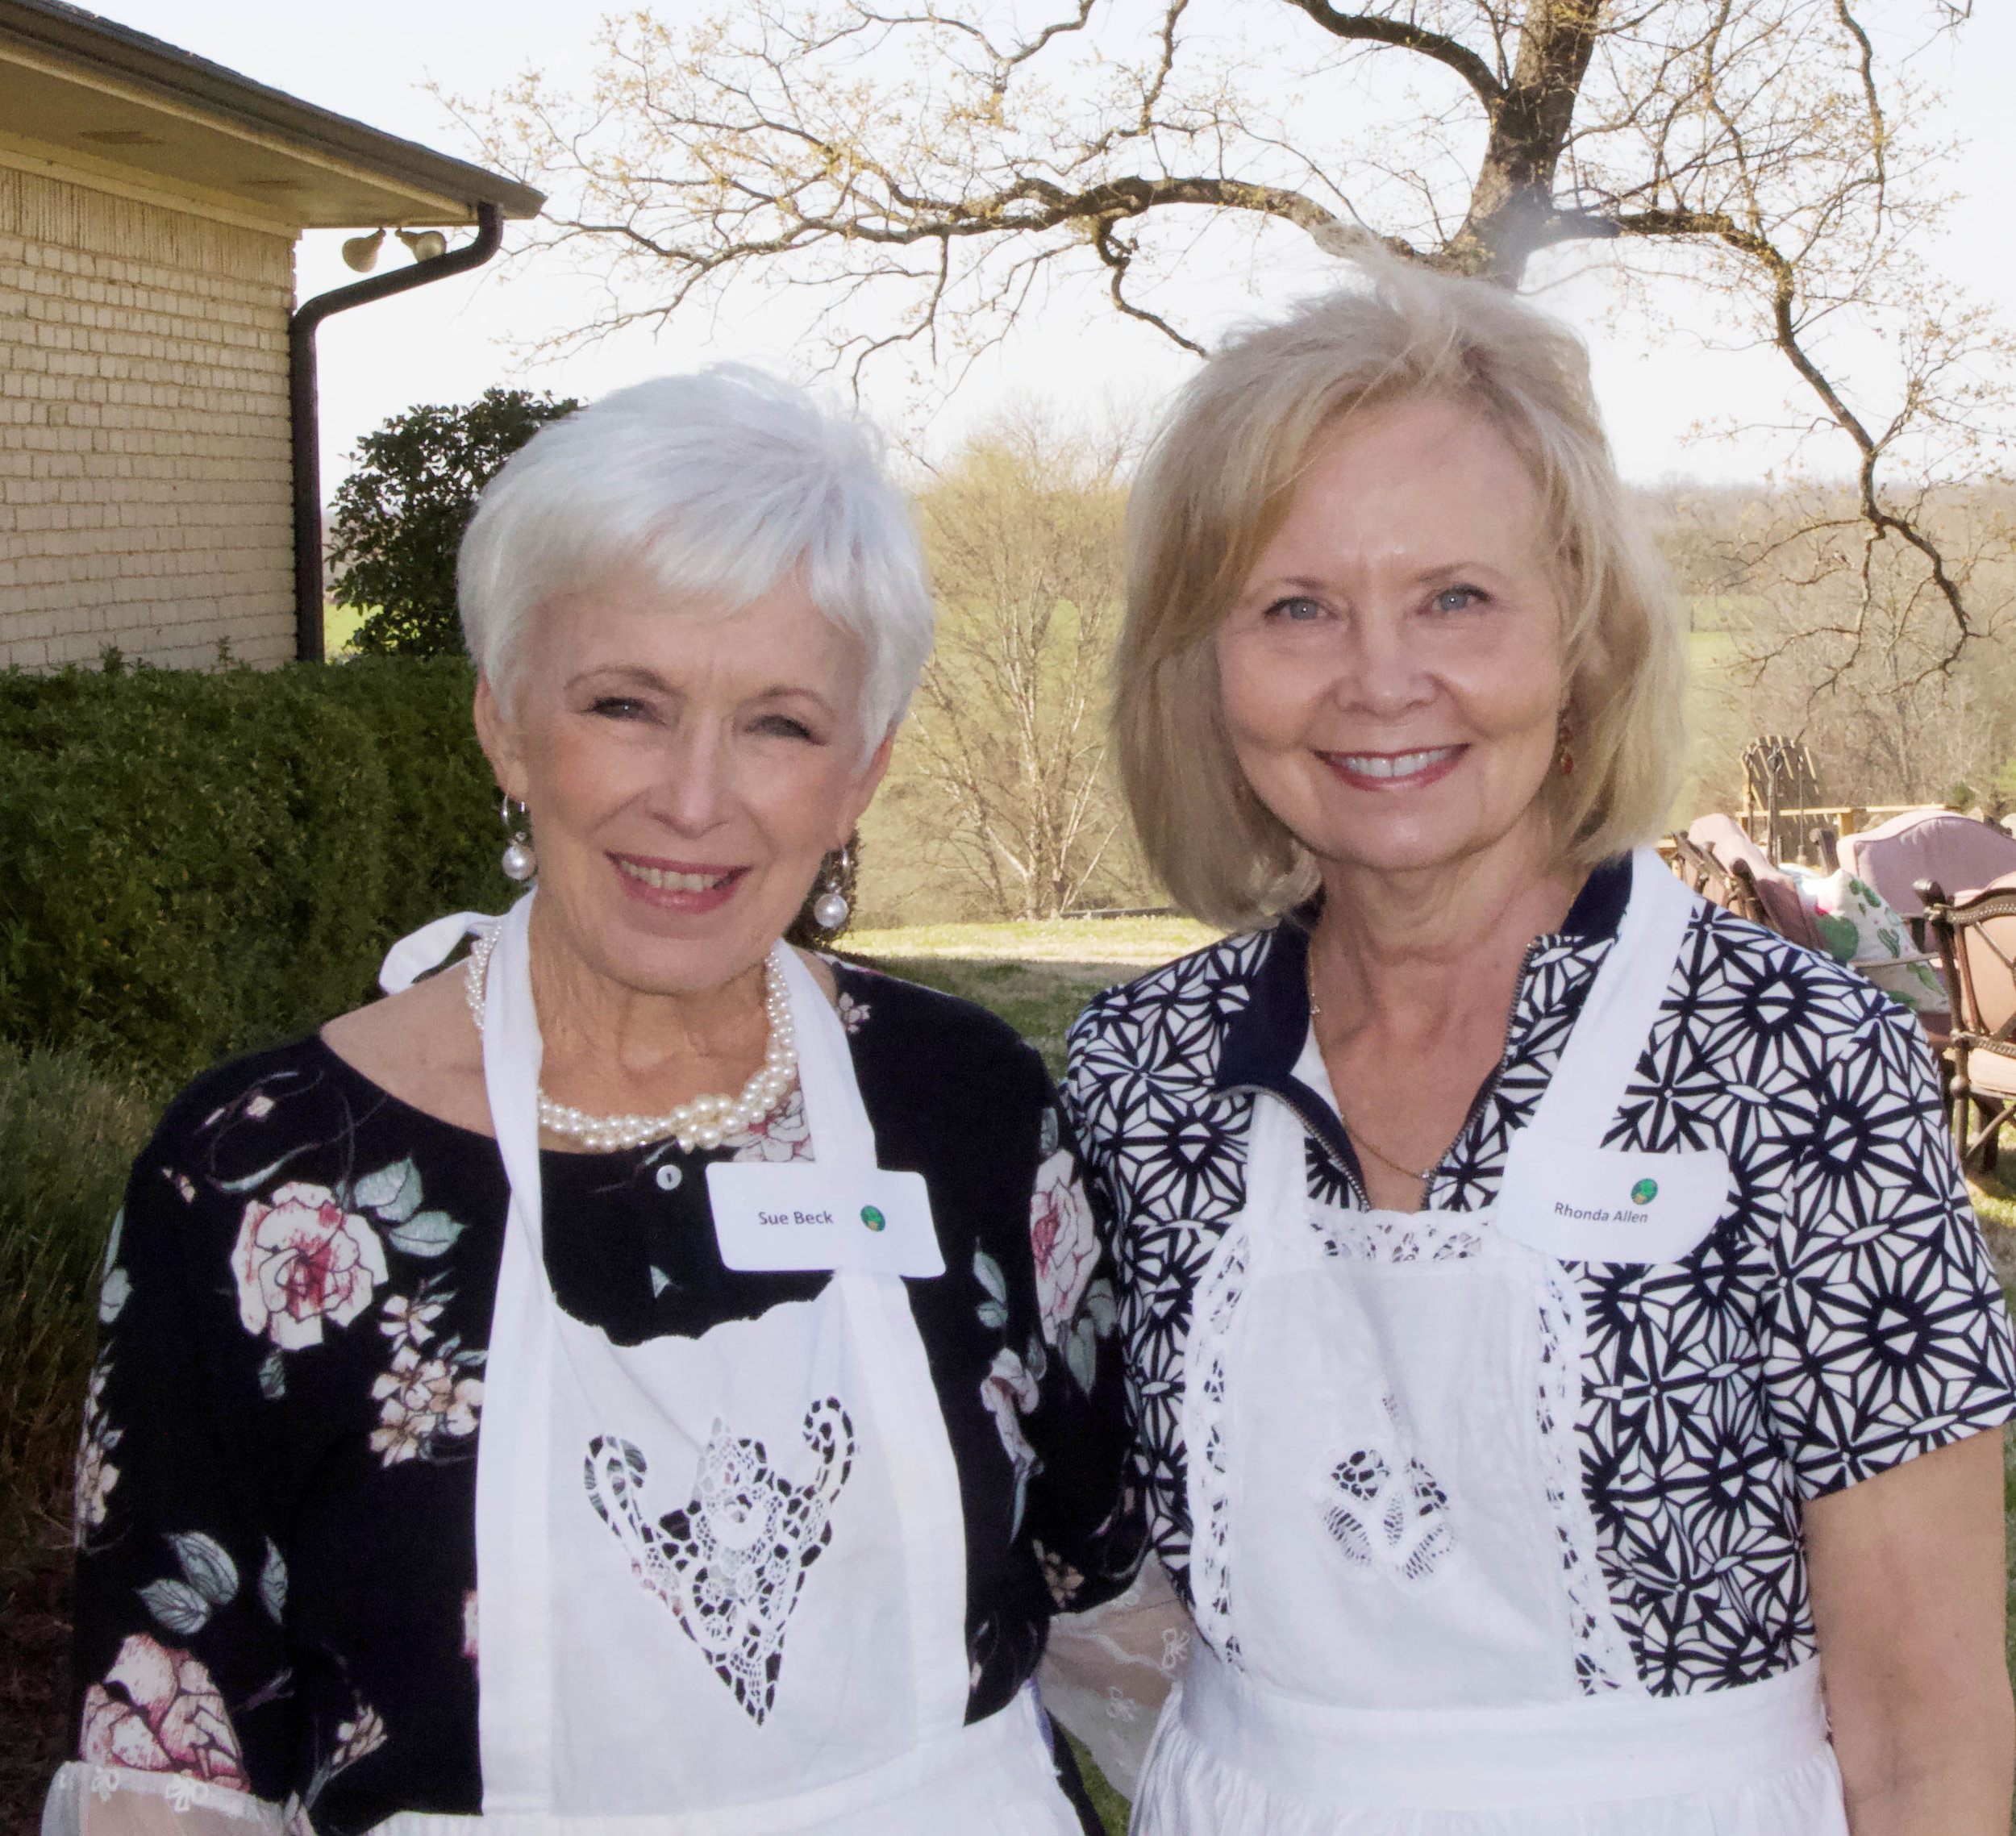 Sue Beck and Rhonda Allen